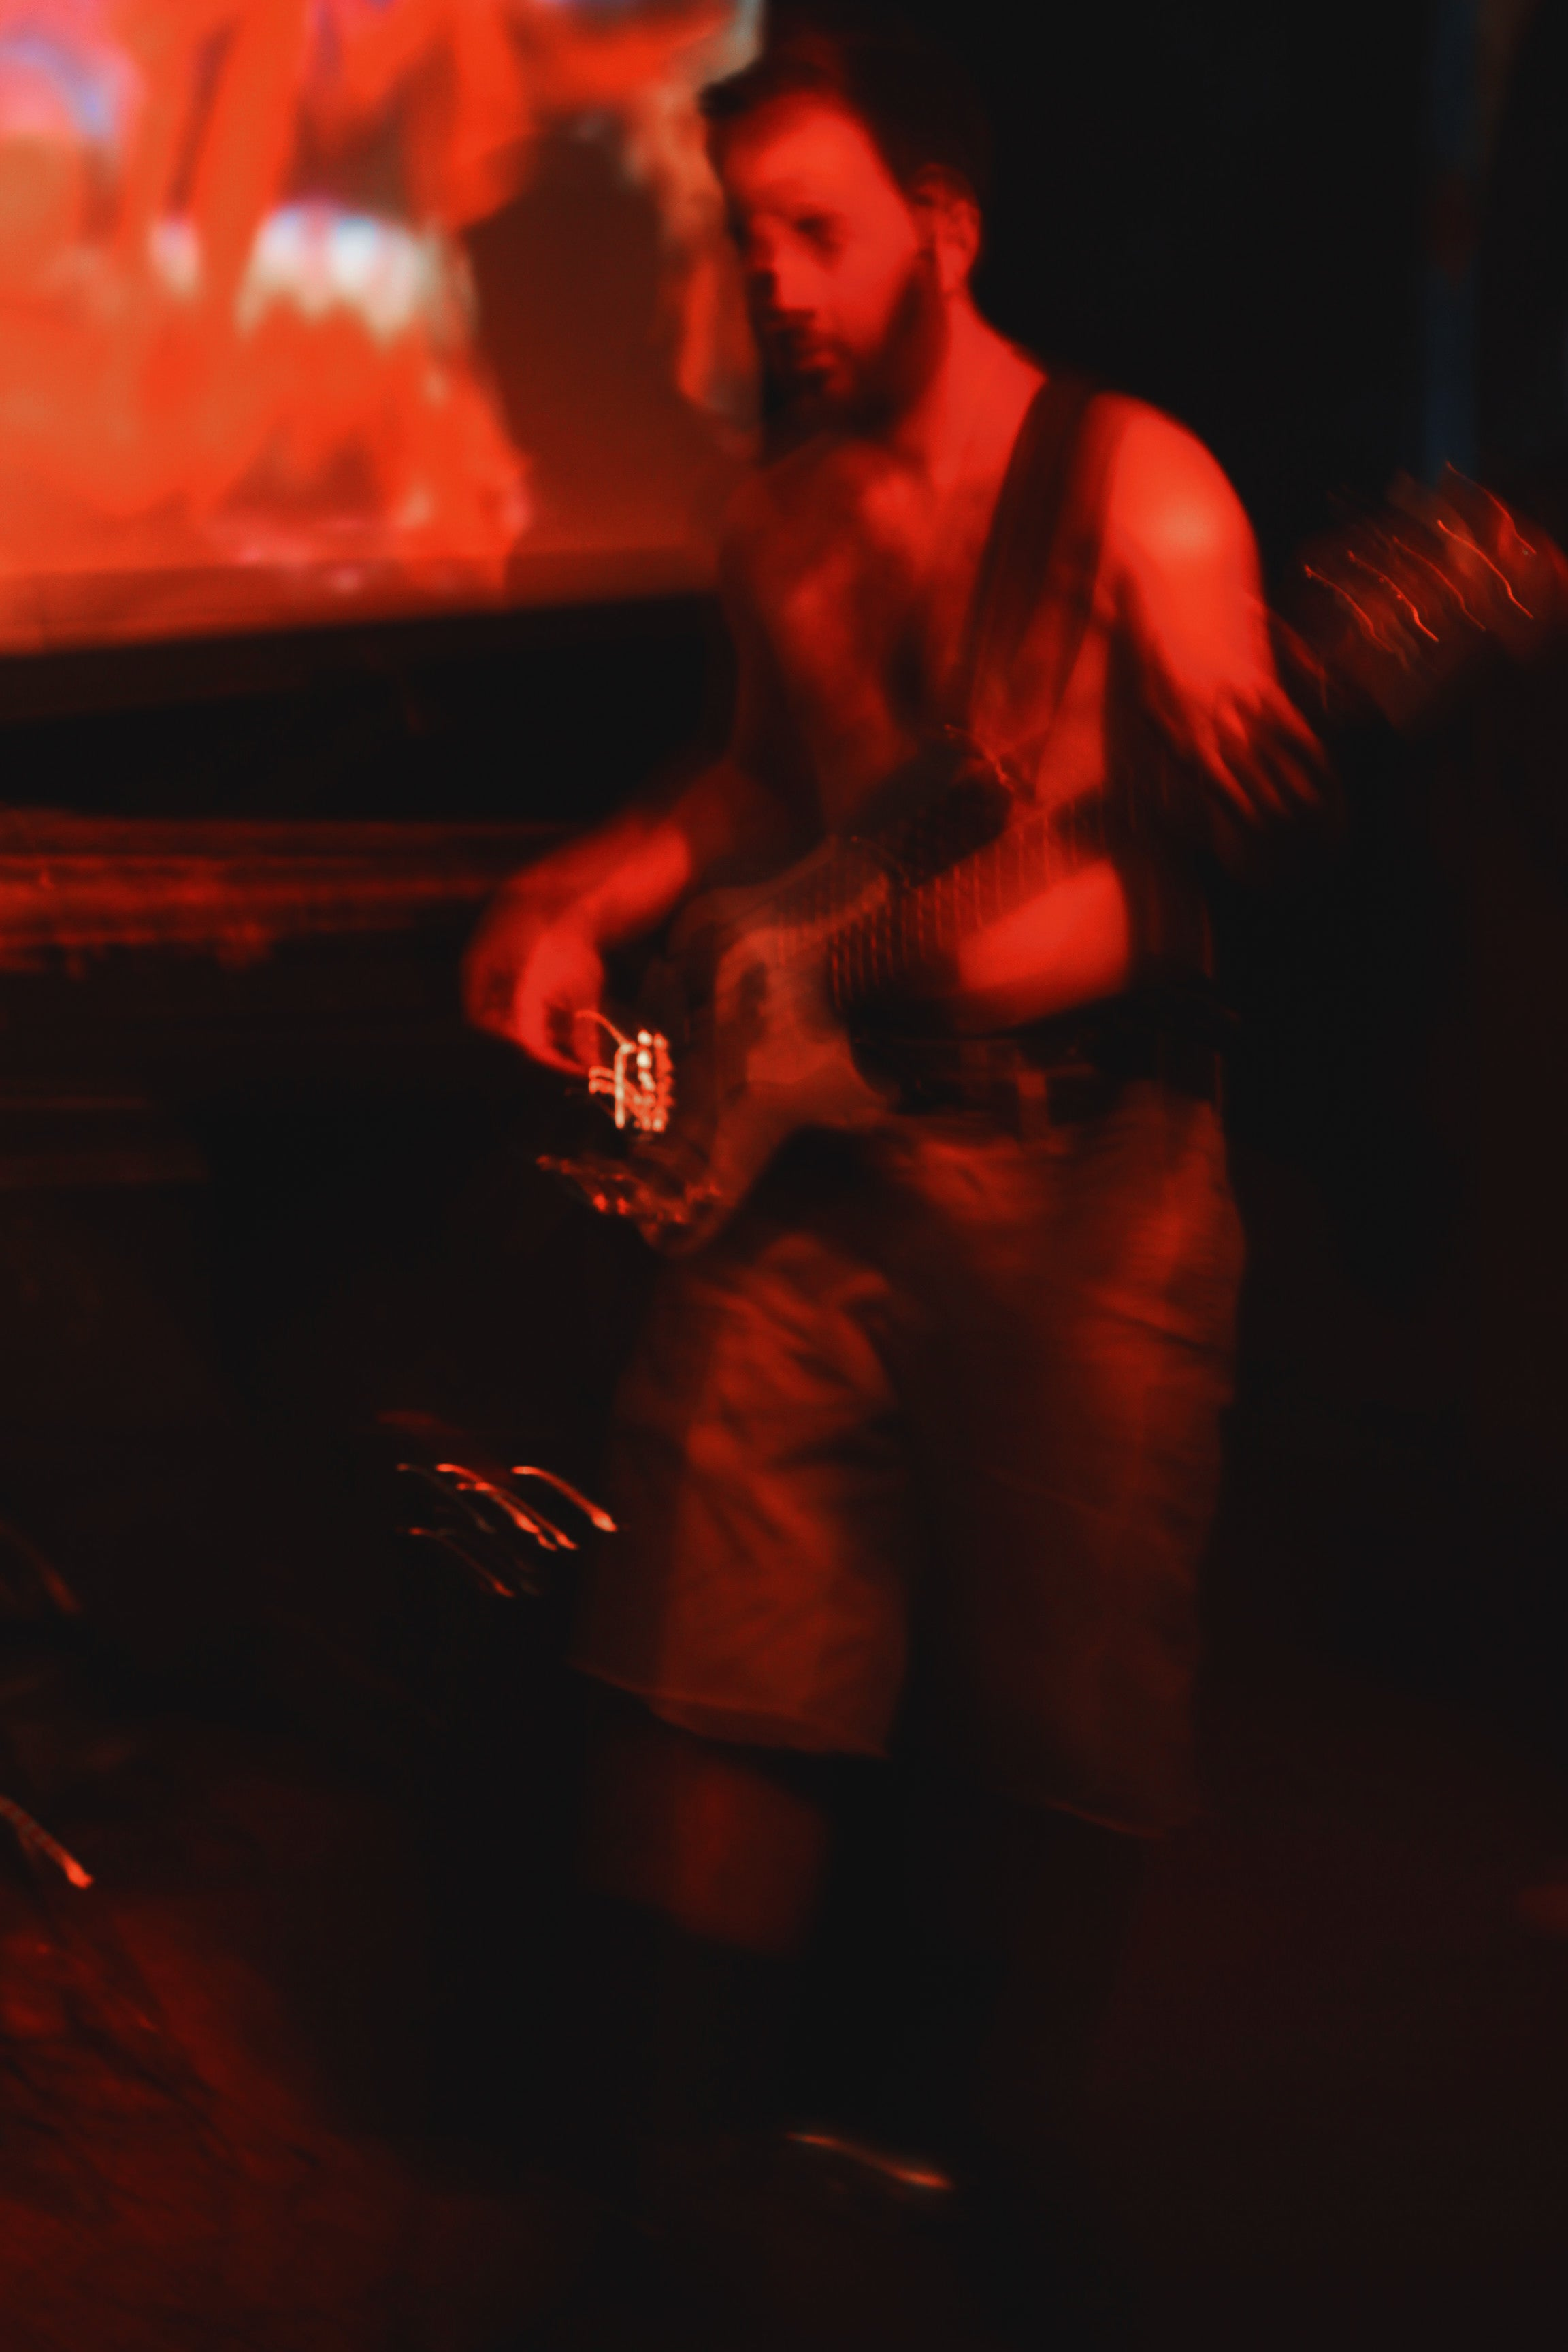 """COSMIC DEMISE """" CDVX2200 """" Film Premiere at The Smell ( Diego Molina Photos )"""